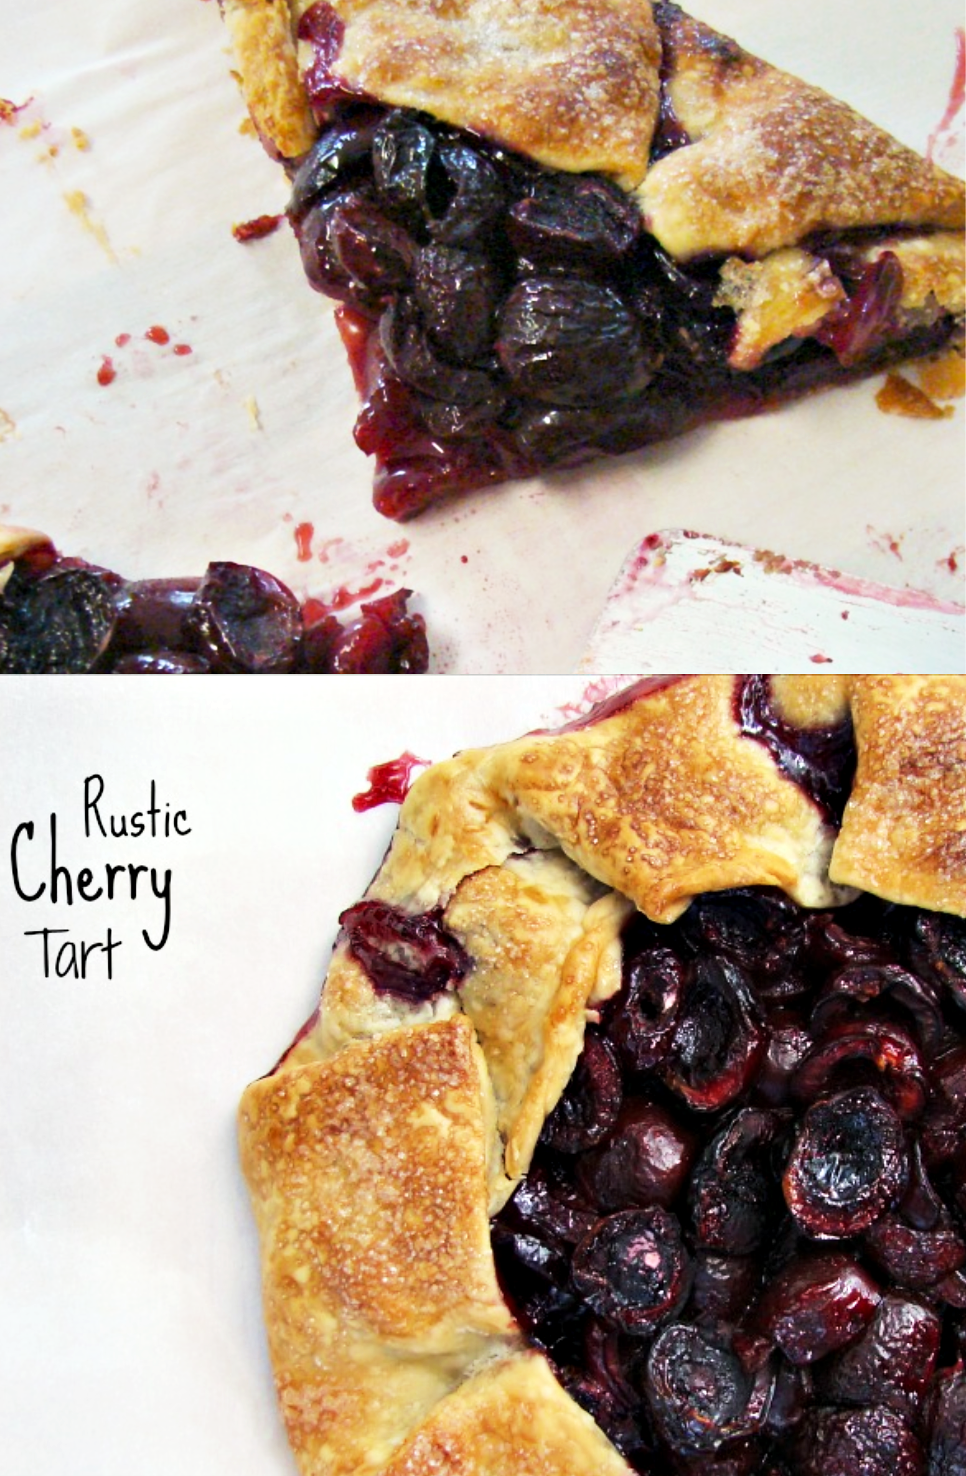 Cherries are one of the best things about summer. This rustic cherry tart recipe is simple to prepare and deliciously sweet.